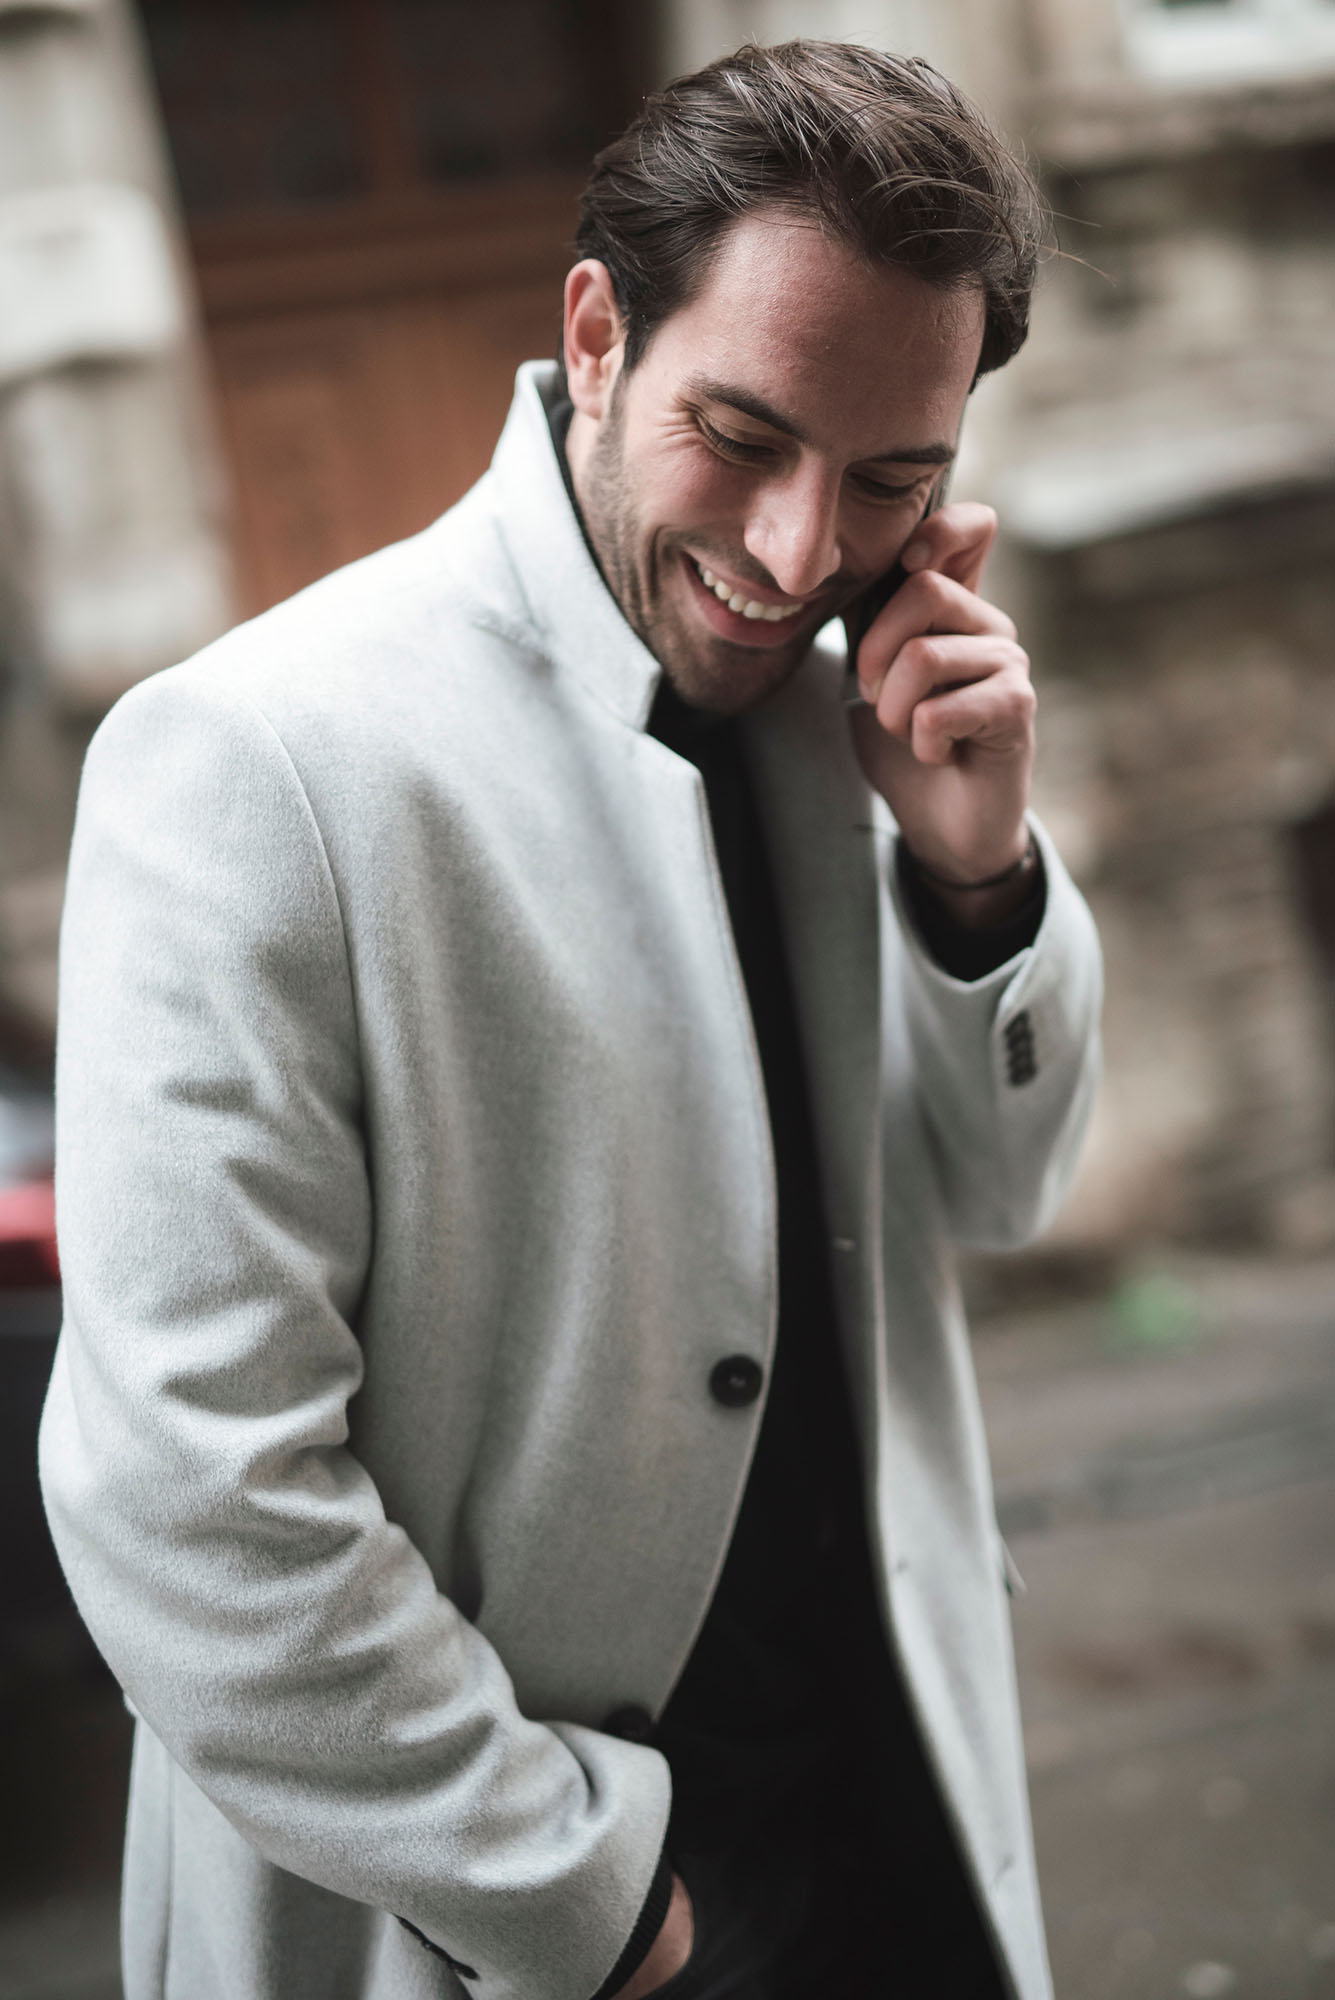 man talking on phone white coat street photography portrait city people camera subject light how to tutorial guide